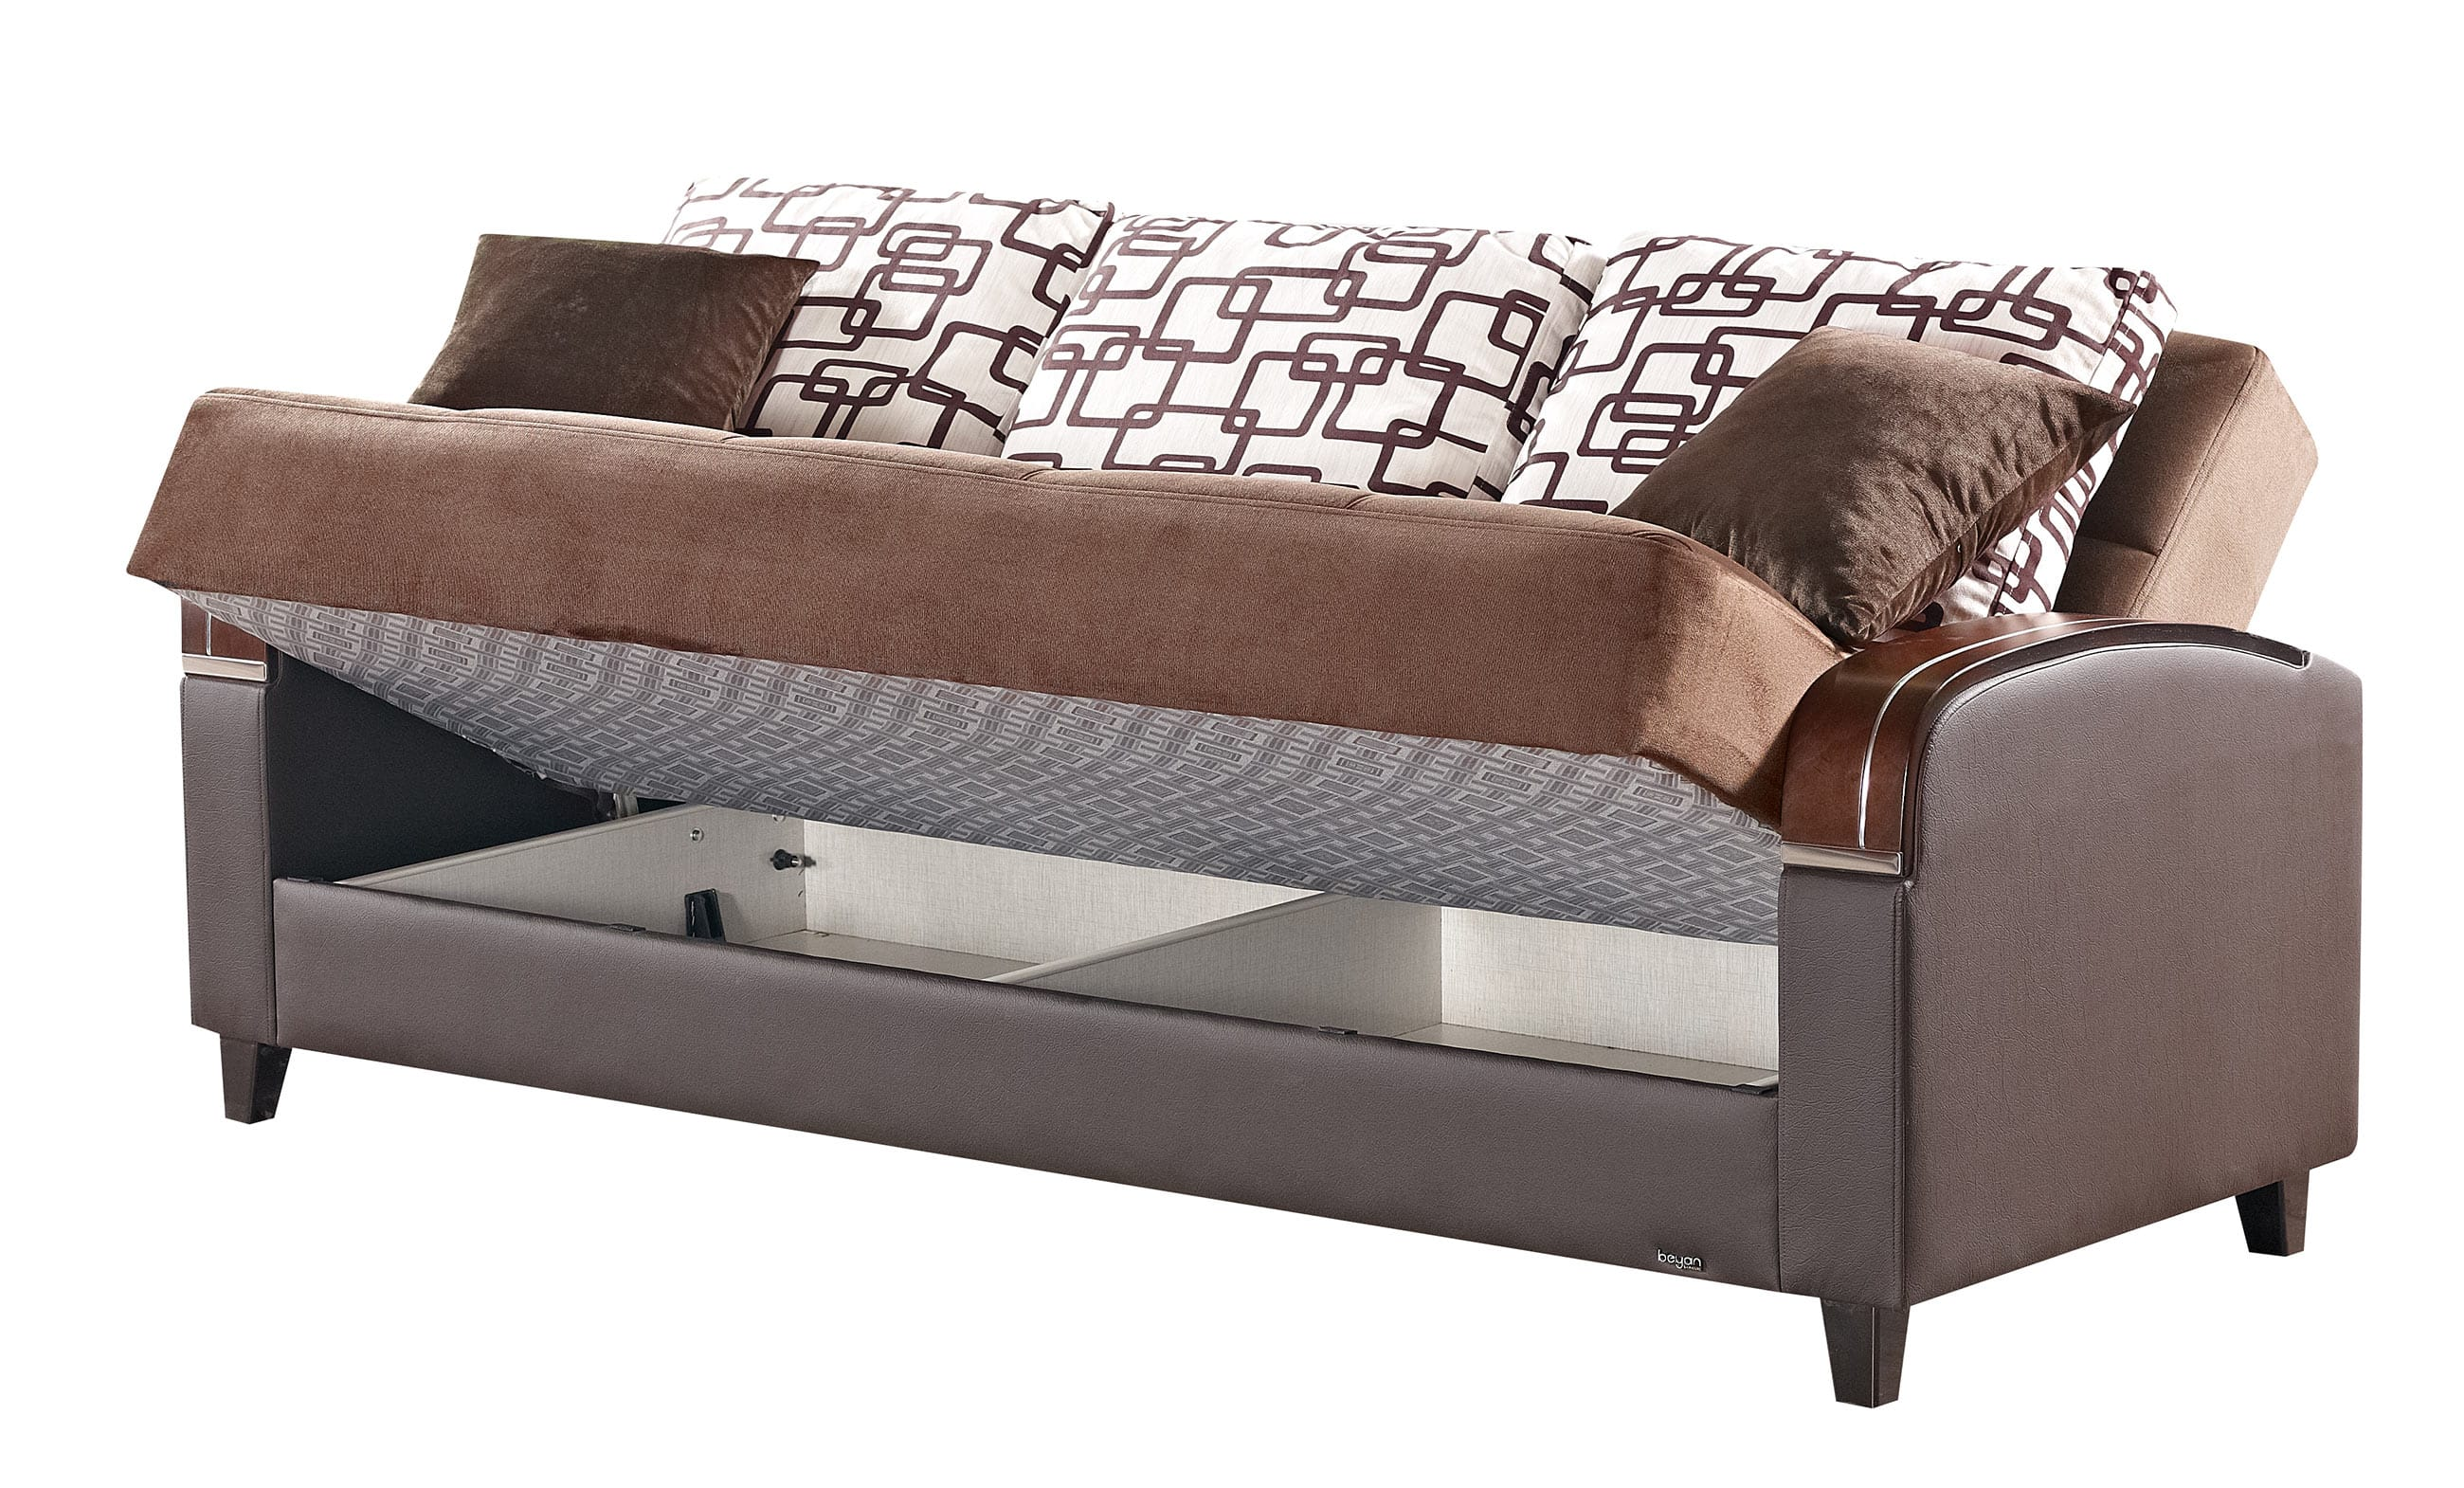 Soho brown fabric sofa bed by empire furniture usa for Furniture stores in soho new york city